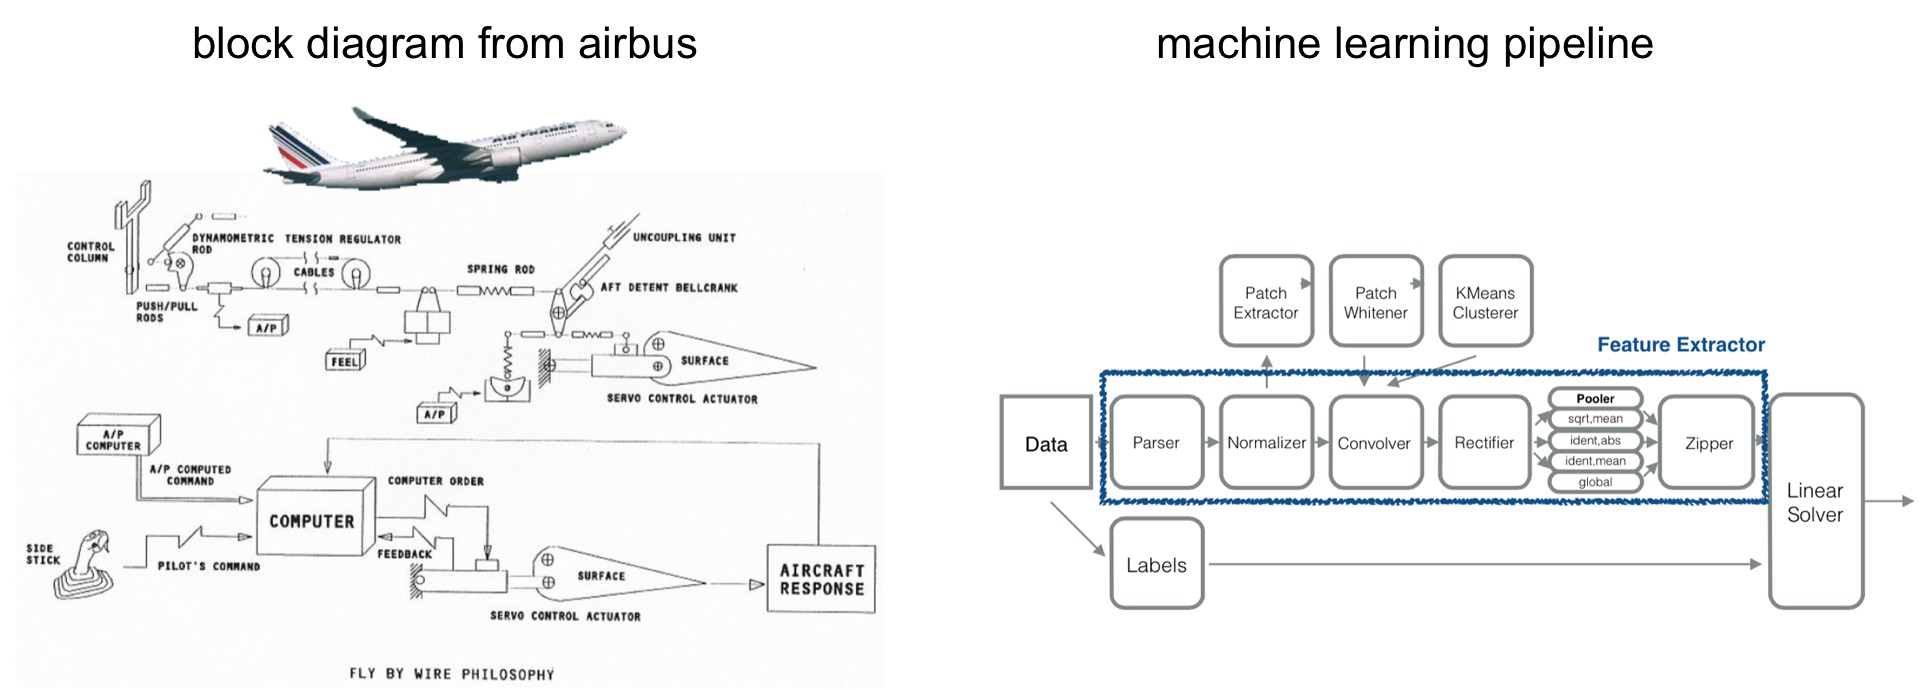 building and deploying large-scale machine learning pipelines - o